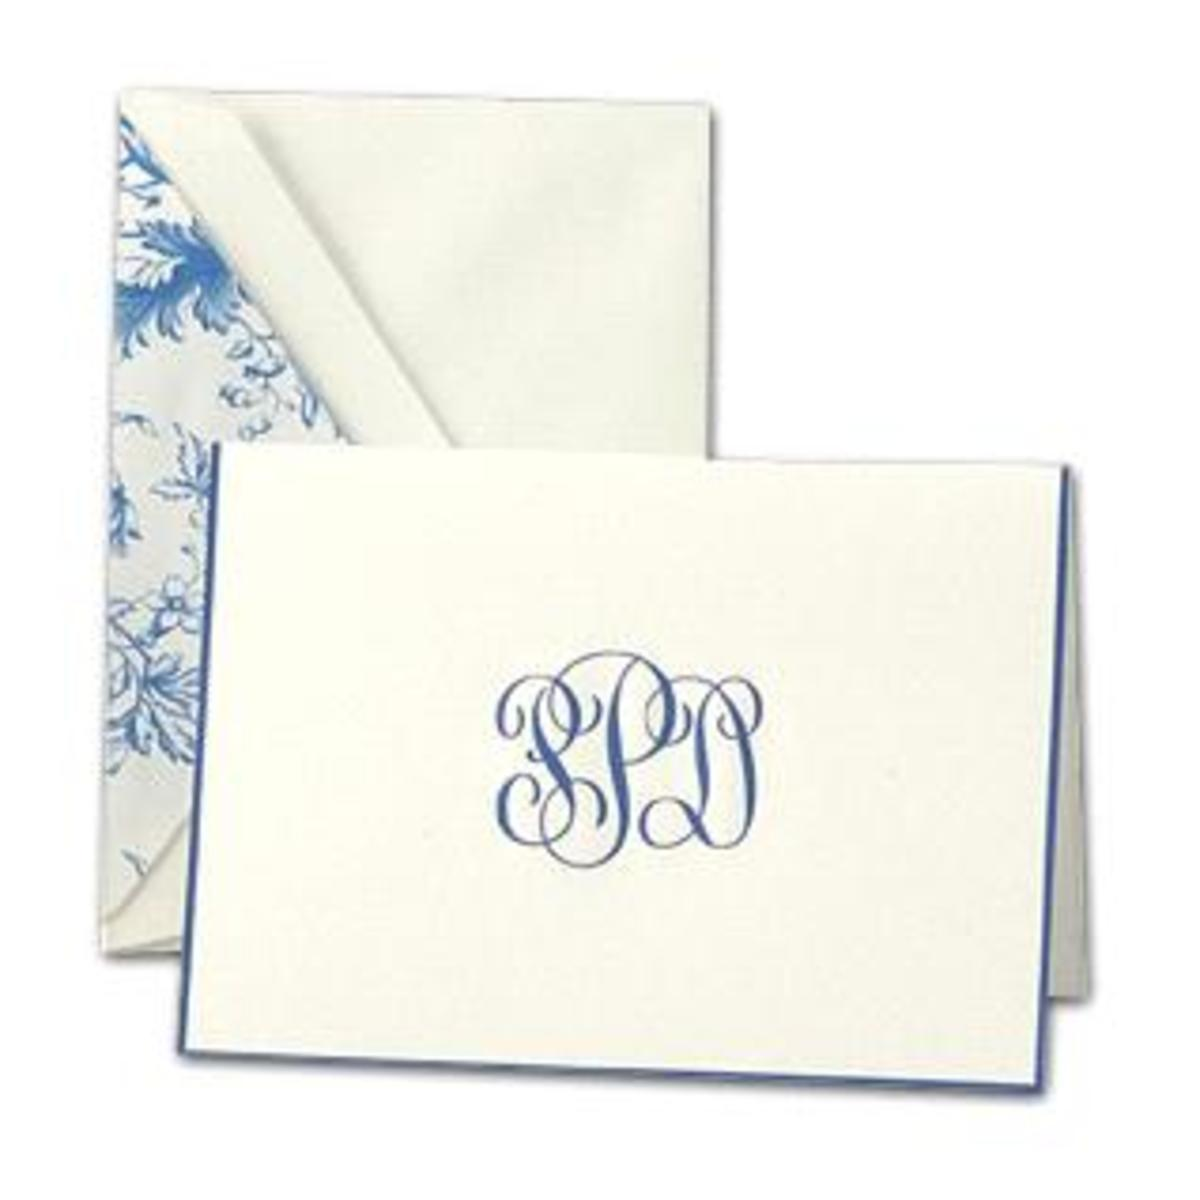 Monogrammed fold over note cards such as these by Crane are ideal for gracious notes.